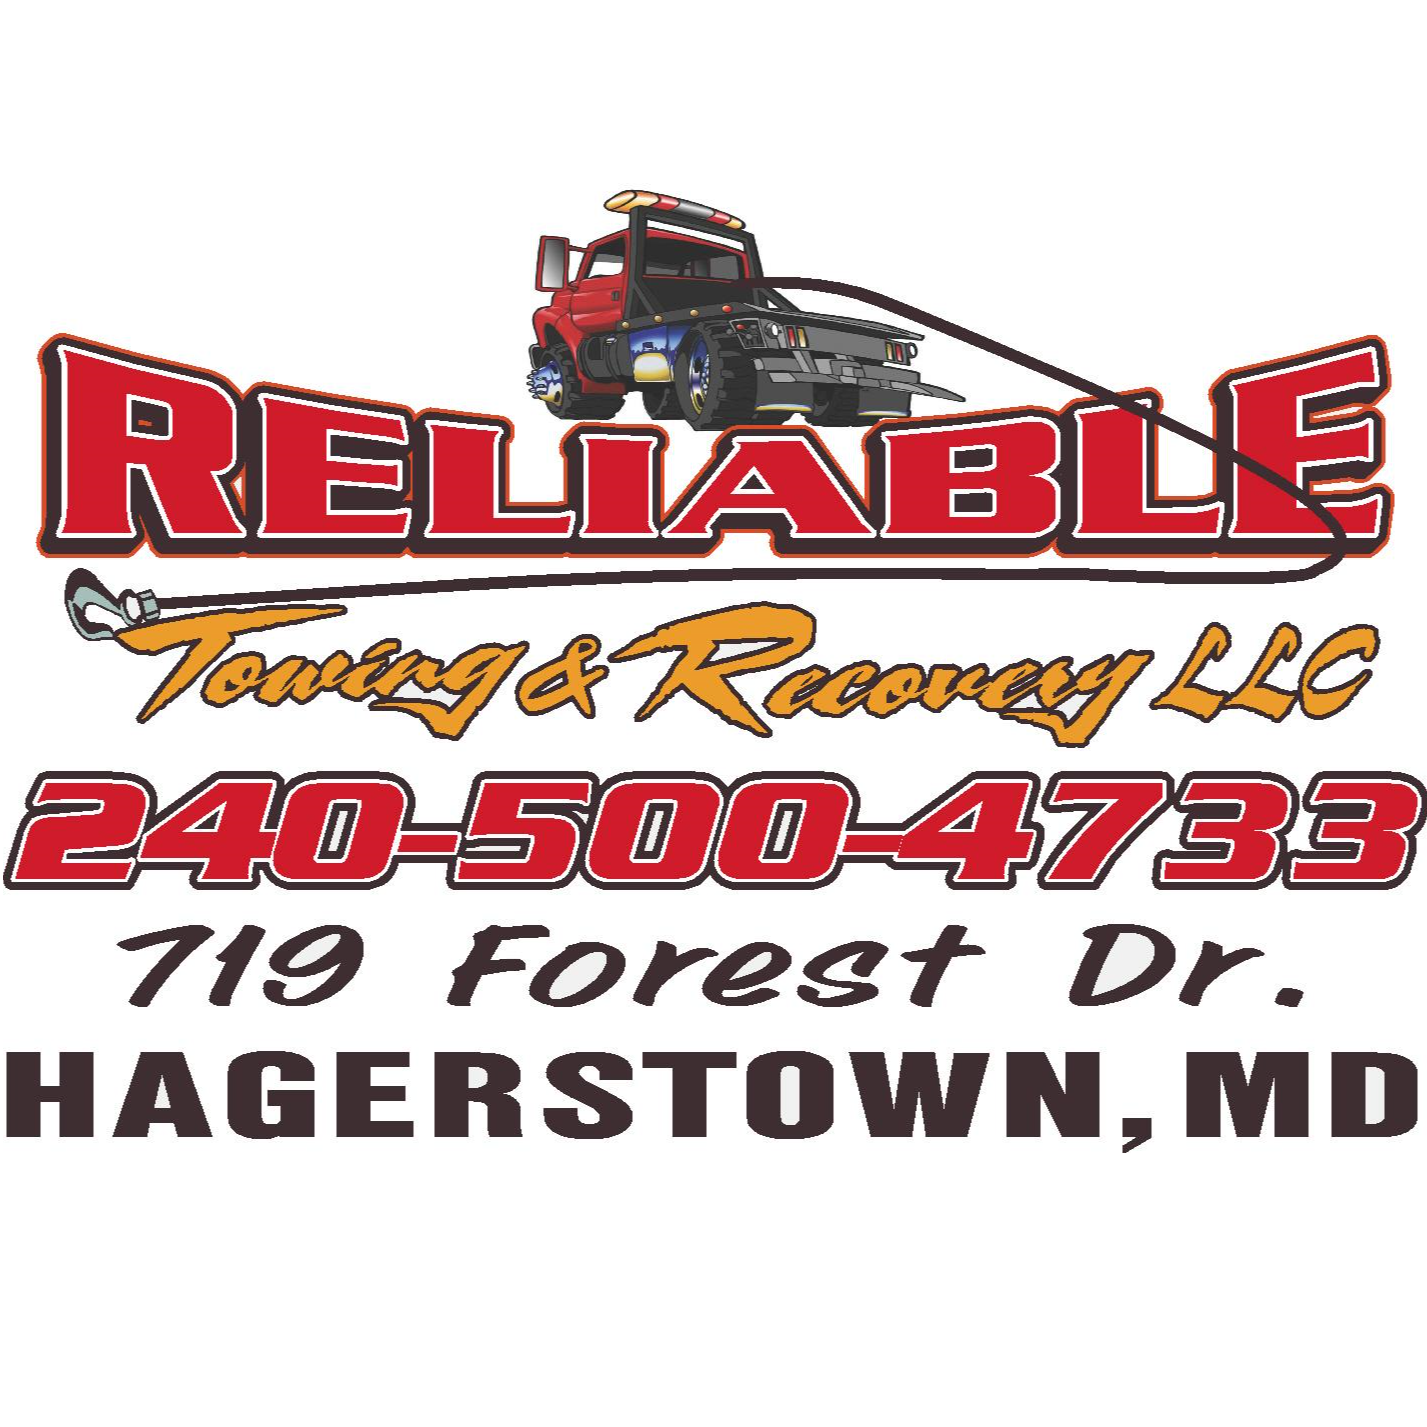 Reliable Towing & Recovery LLC logo